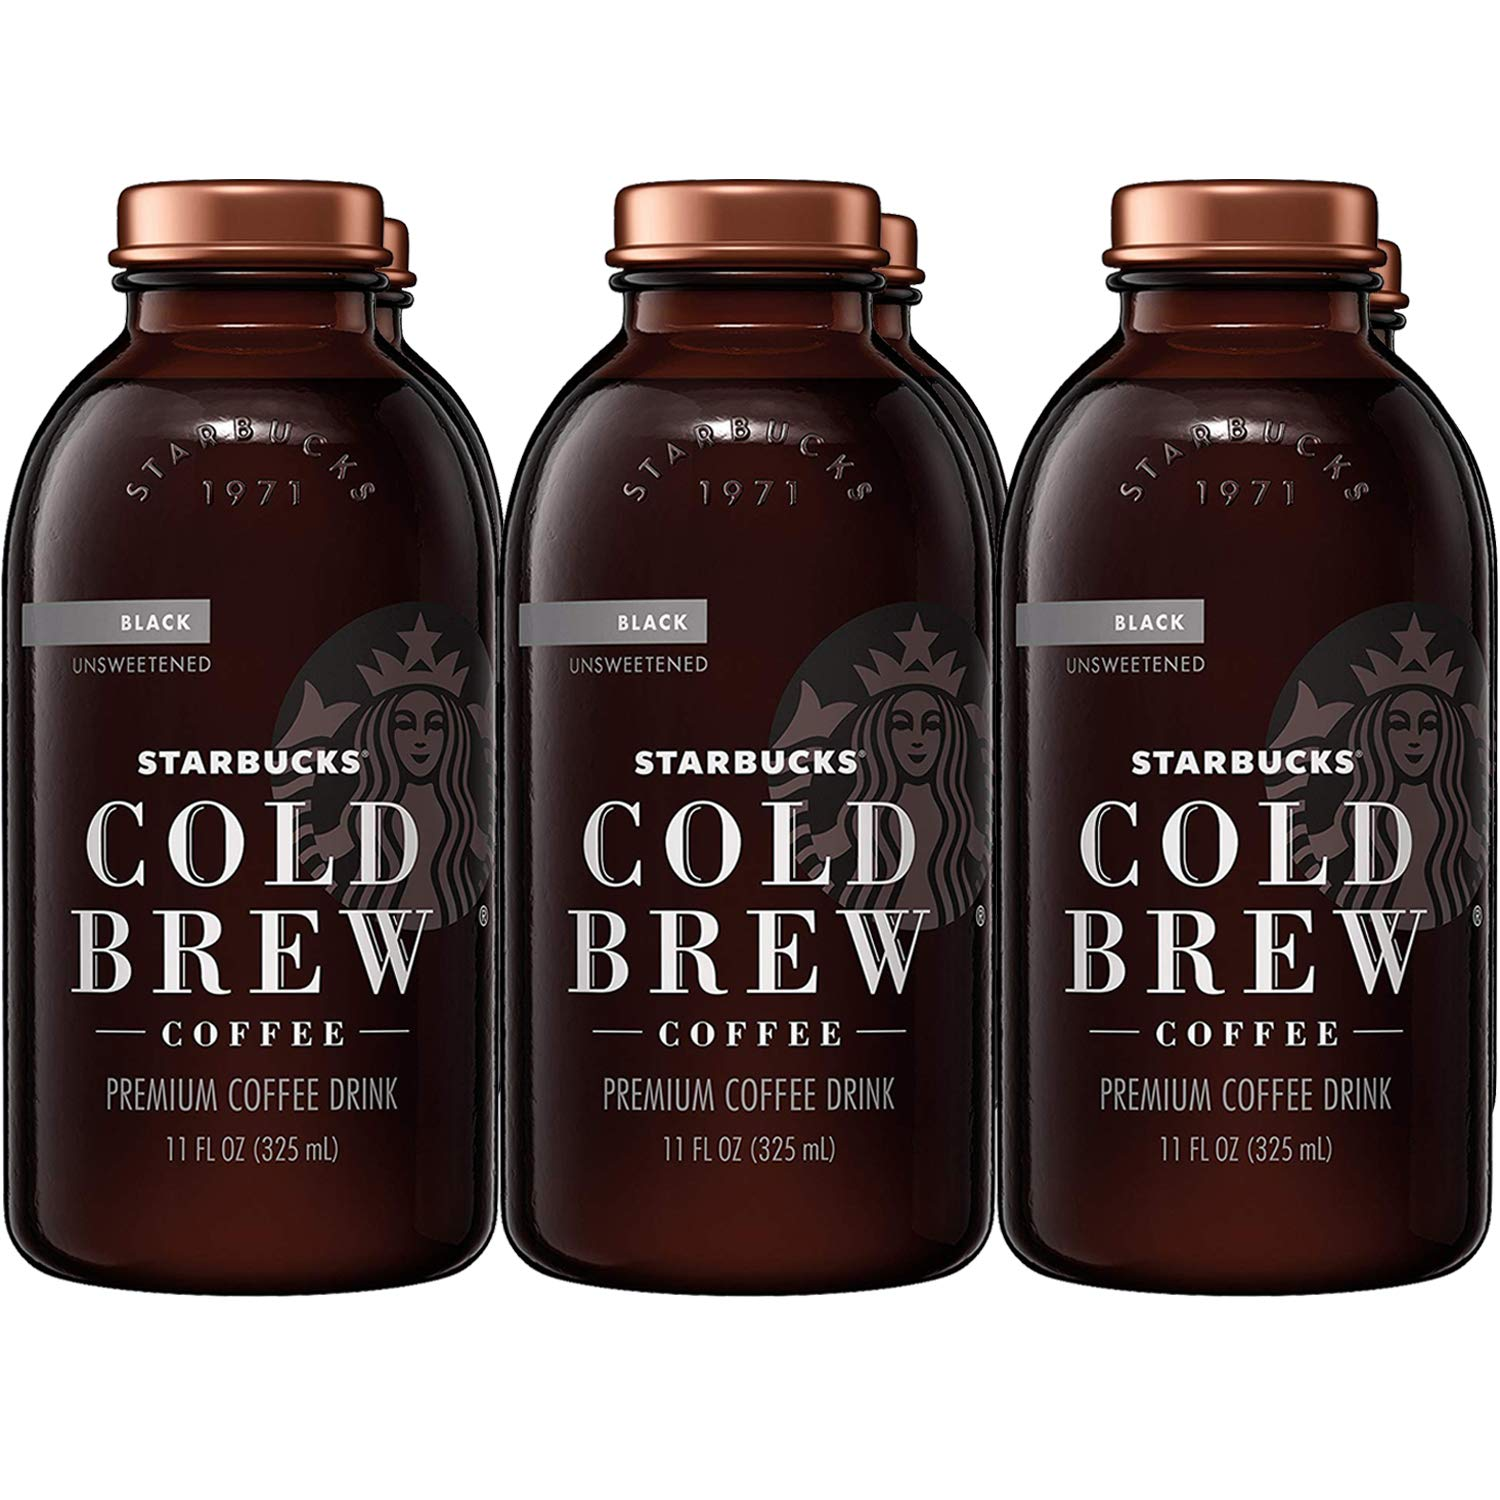 Cold Brew Coffee Black Unsweetened 11 Oz Glass Bottles 6 Count